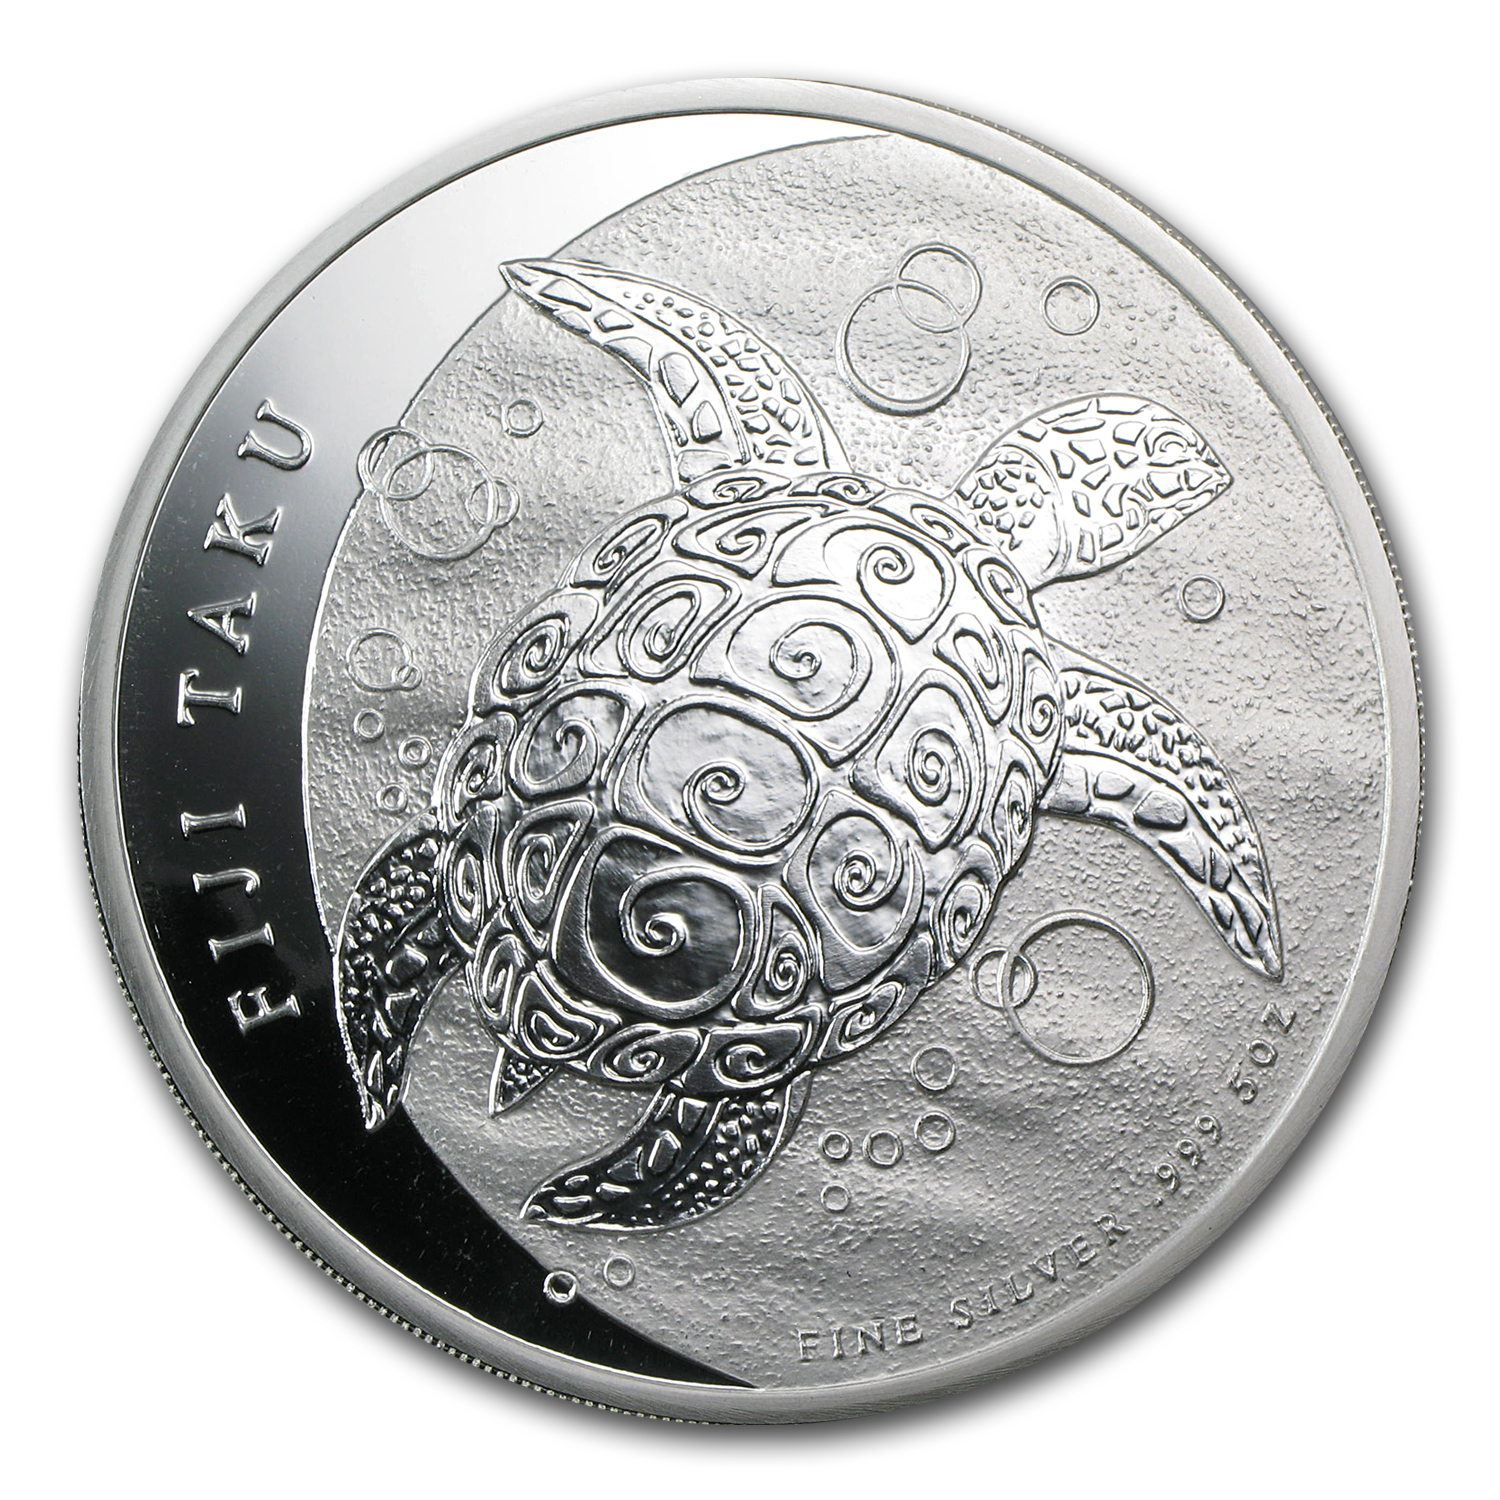 2013 5 oz Silver New Zealand Mint $10 Fiji Taku